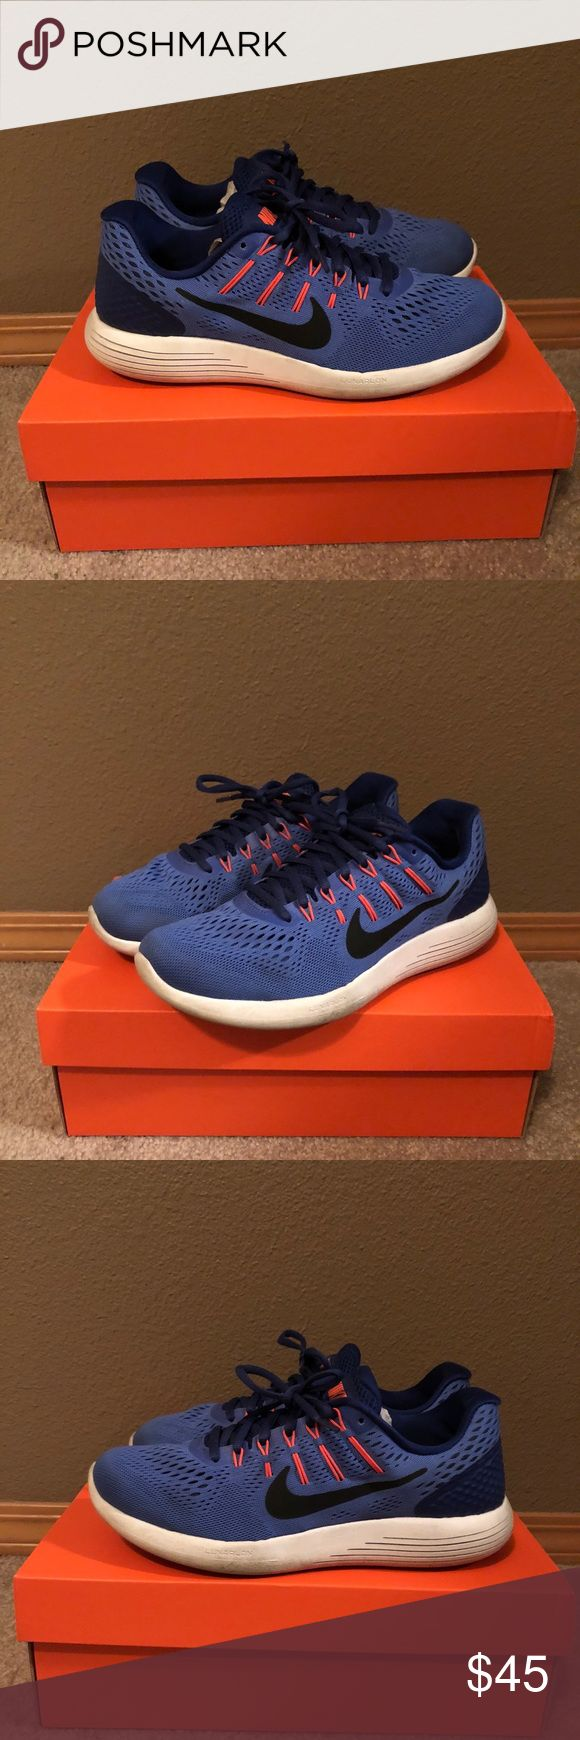 Nike Lunarglide 8 Nike Lunarglide 8! Great condition. Perfect if you need extra support for running or walking. Provides arch support and dynamic support. Will ship same or next day! Reasonable offers gladly accepted! #nike #lunarglide #runningshoe #walkingshoe #lunarglide8 #nikeshoes #nikelunarglide #blueshoe #archsupport Nike Shoes